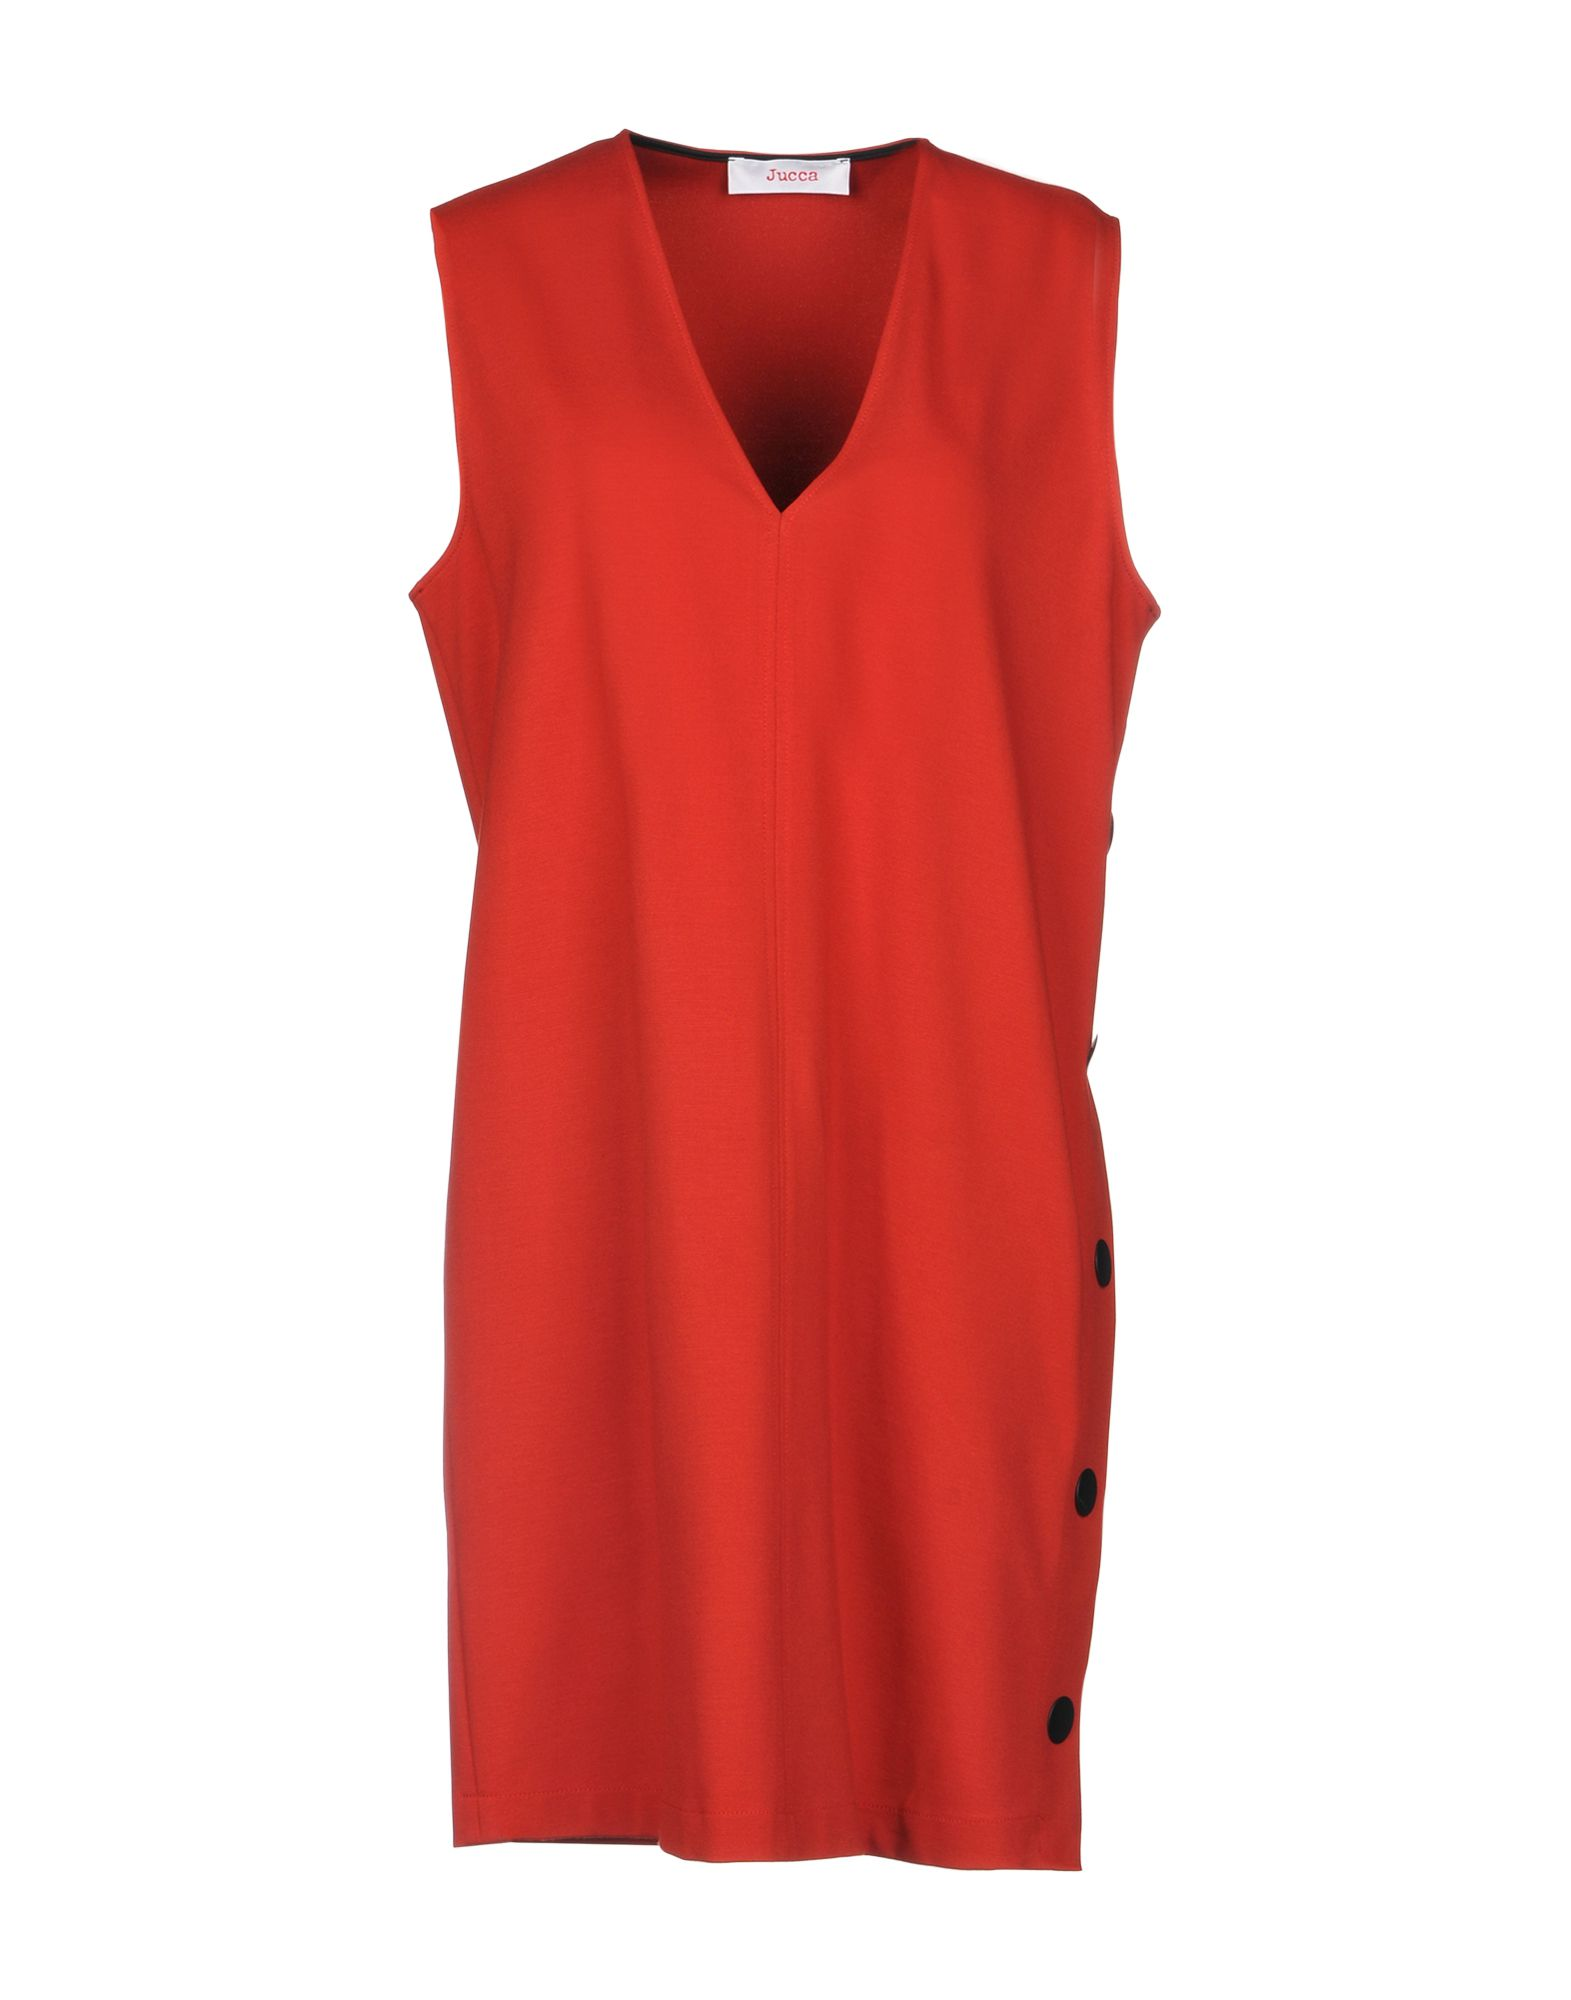 JUCCA Short Dress in Red